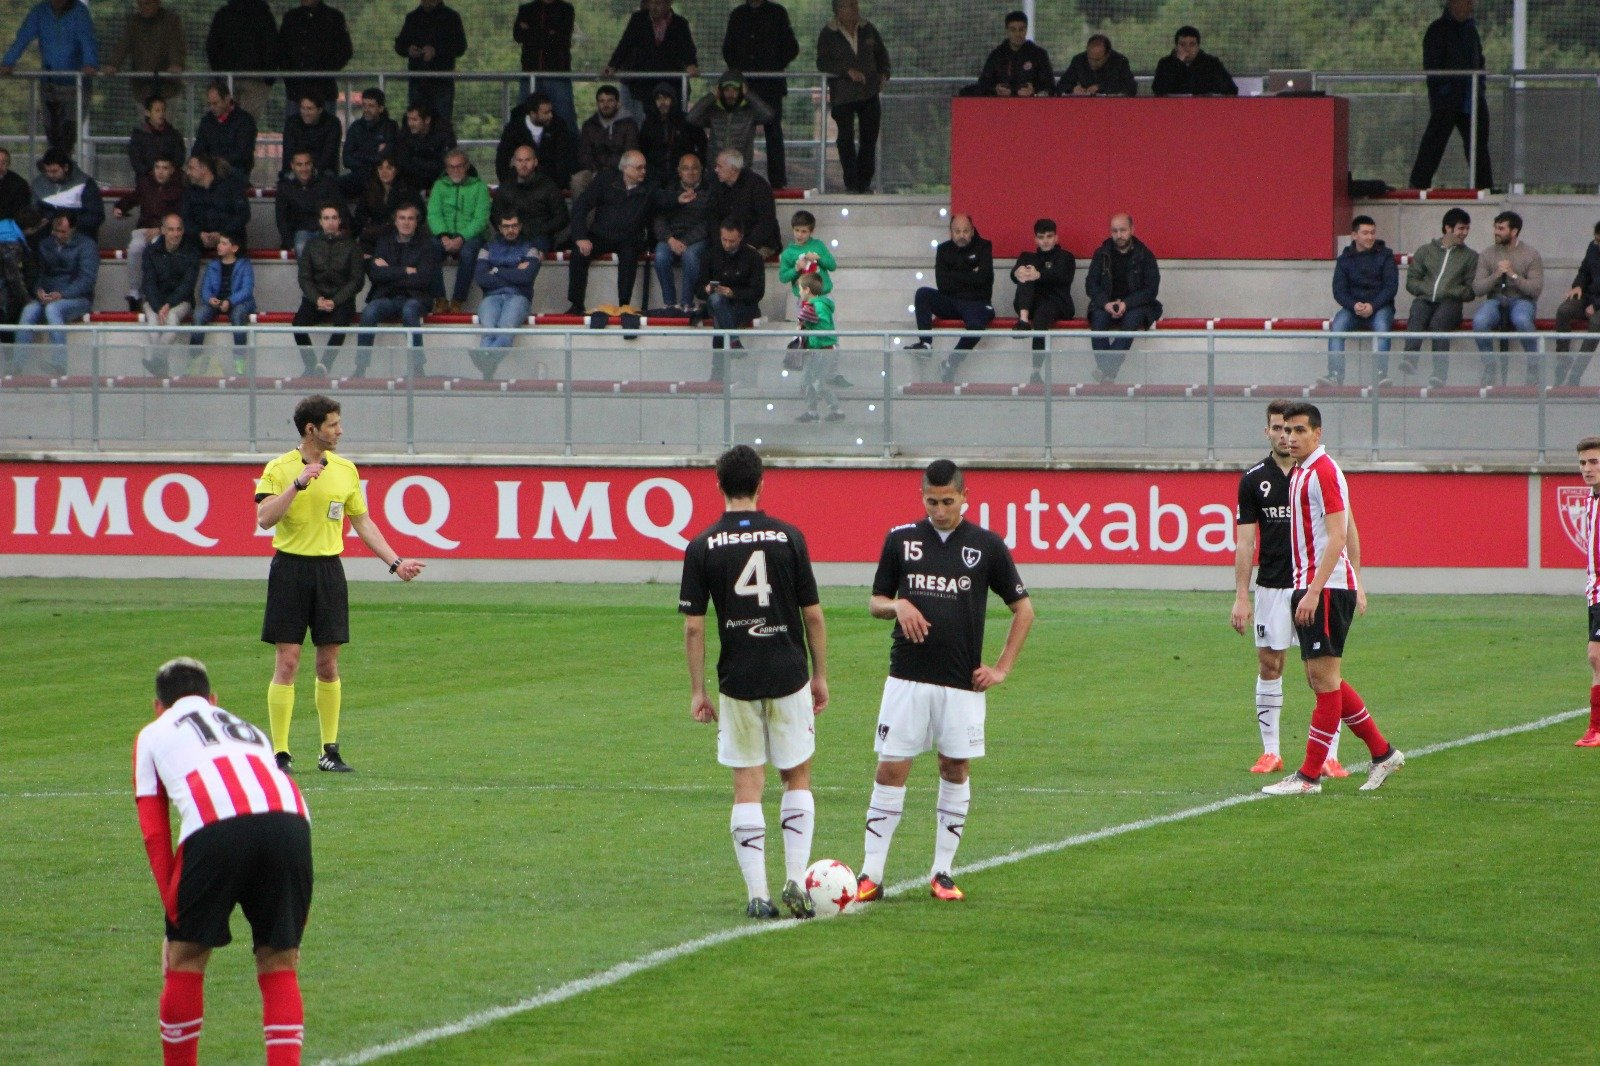 Bilbao Athletic 8 – 0 CD Lealtad